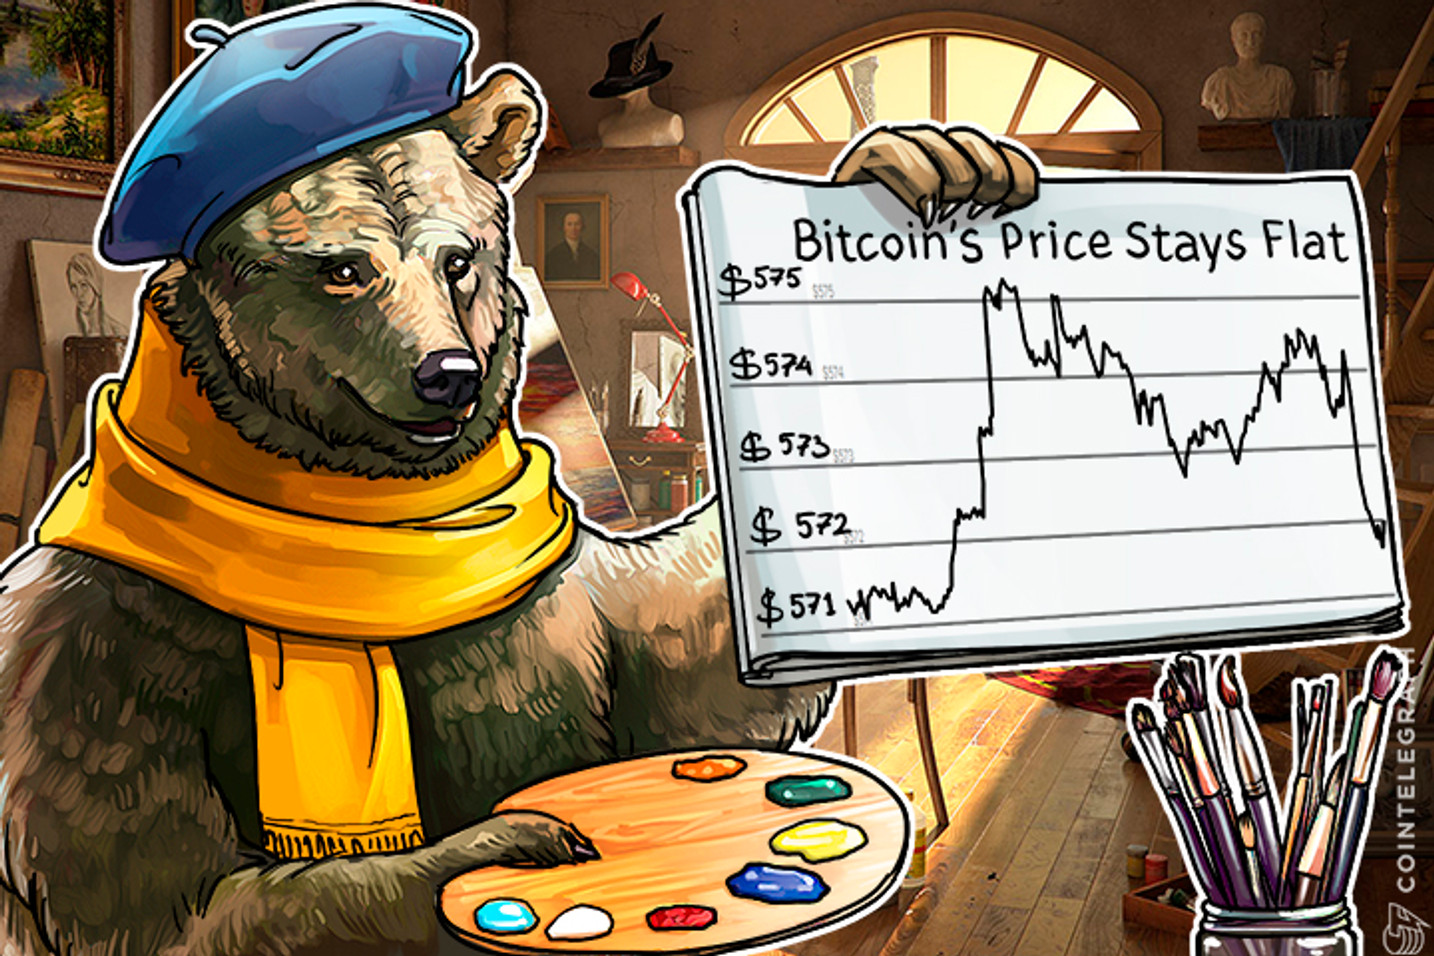 Bitcoin Price Stays Flat as a Consolidation Range Between $565 and $585 Remains Intact